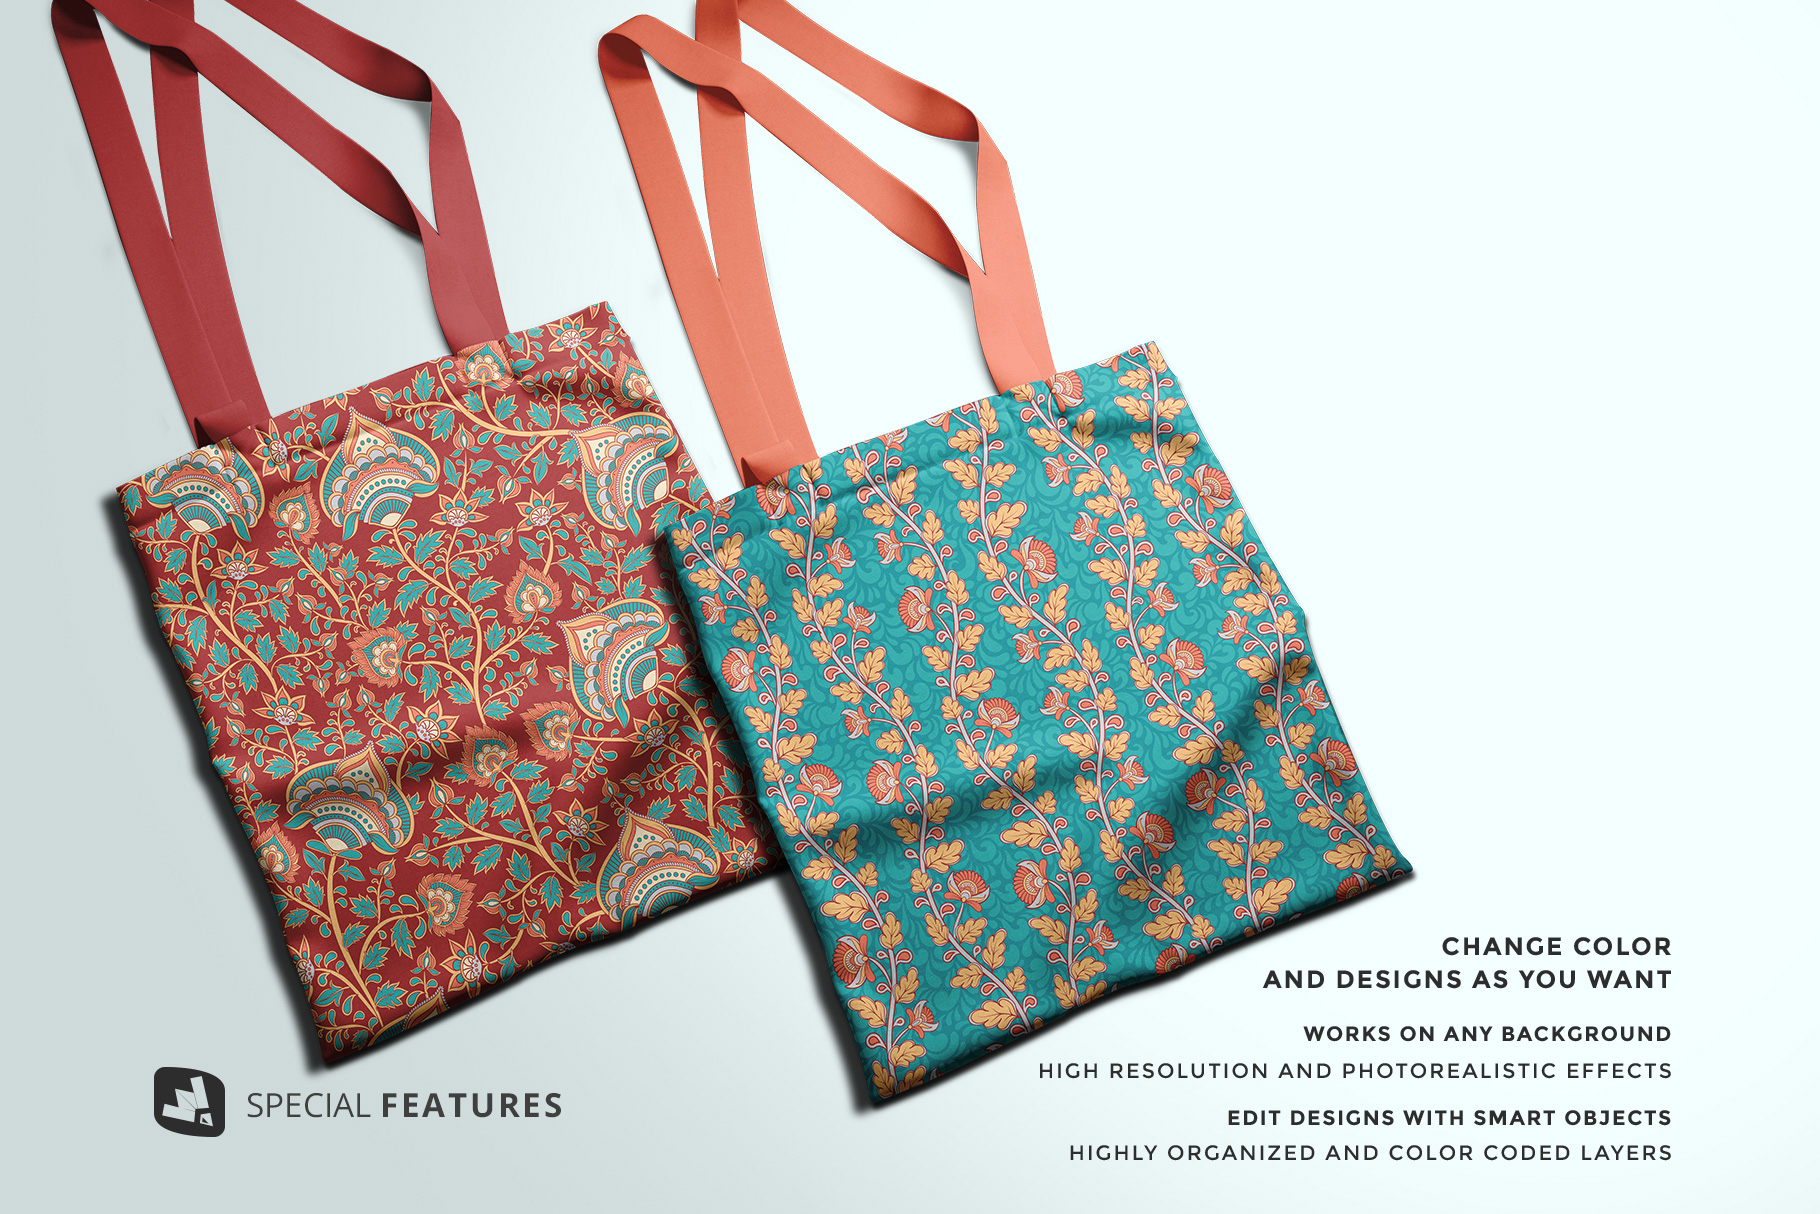 special features of the topview reusable cotton bag mockup